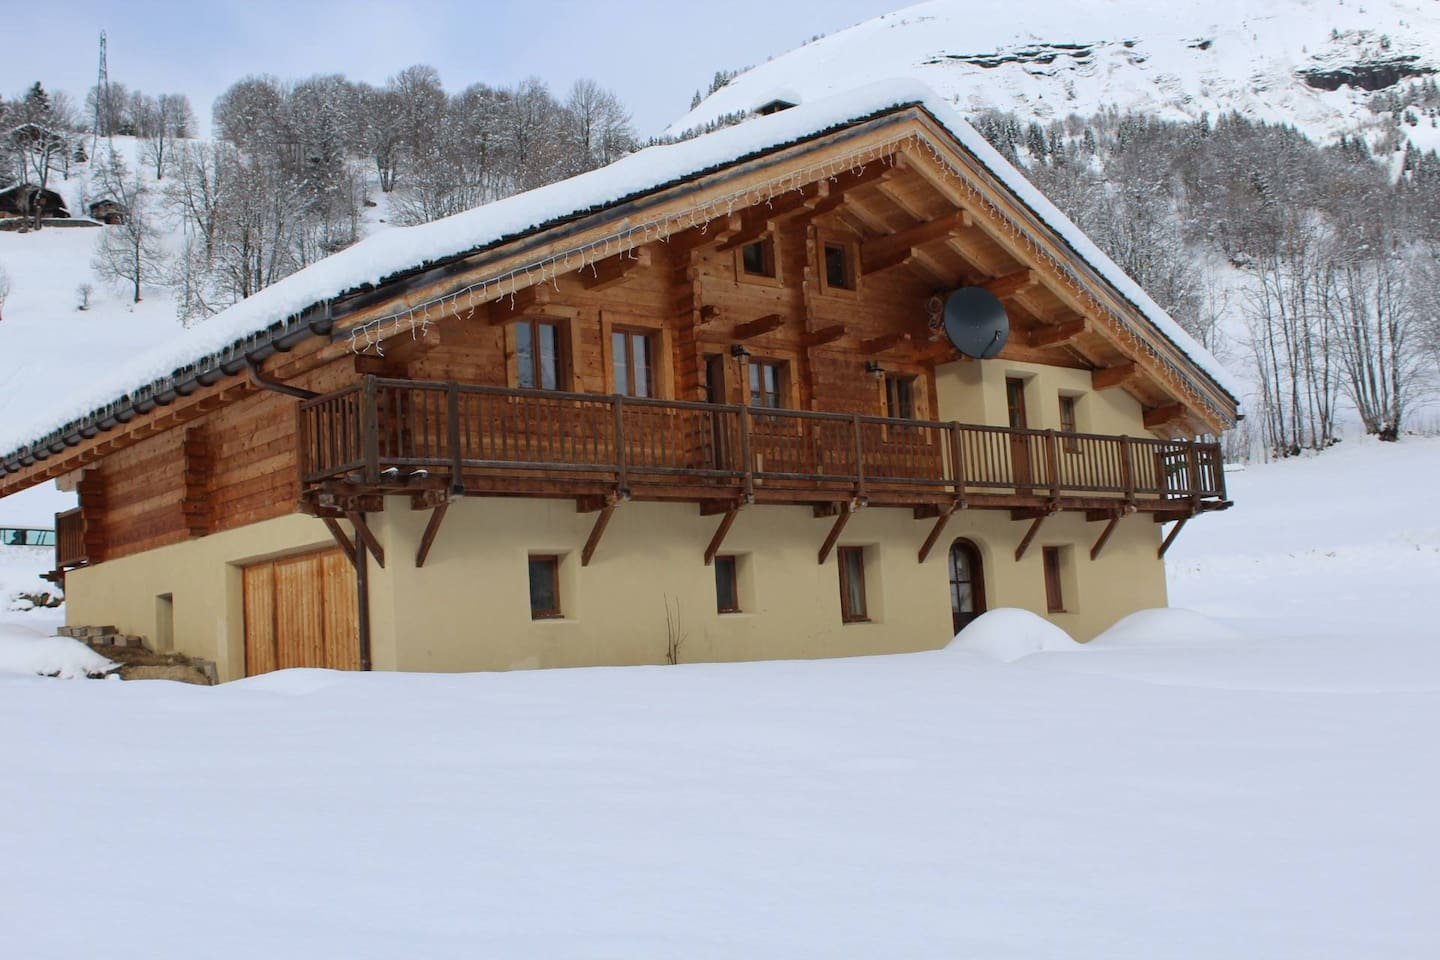 Chalet Very Joly in Winter